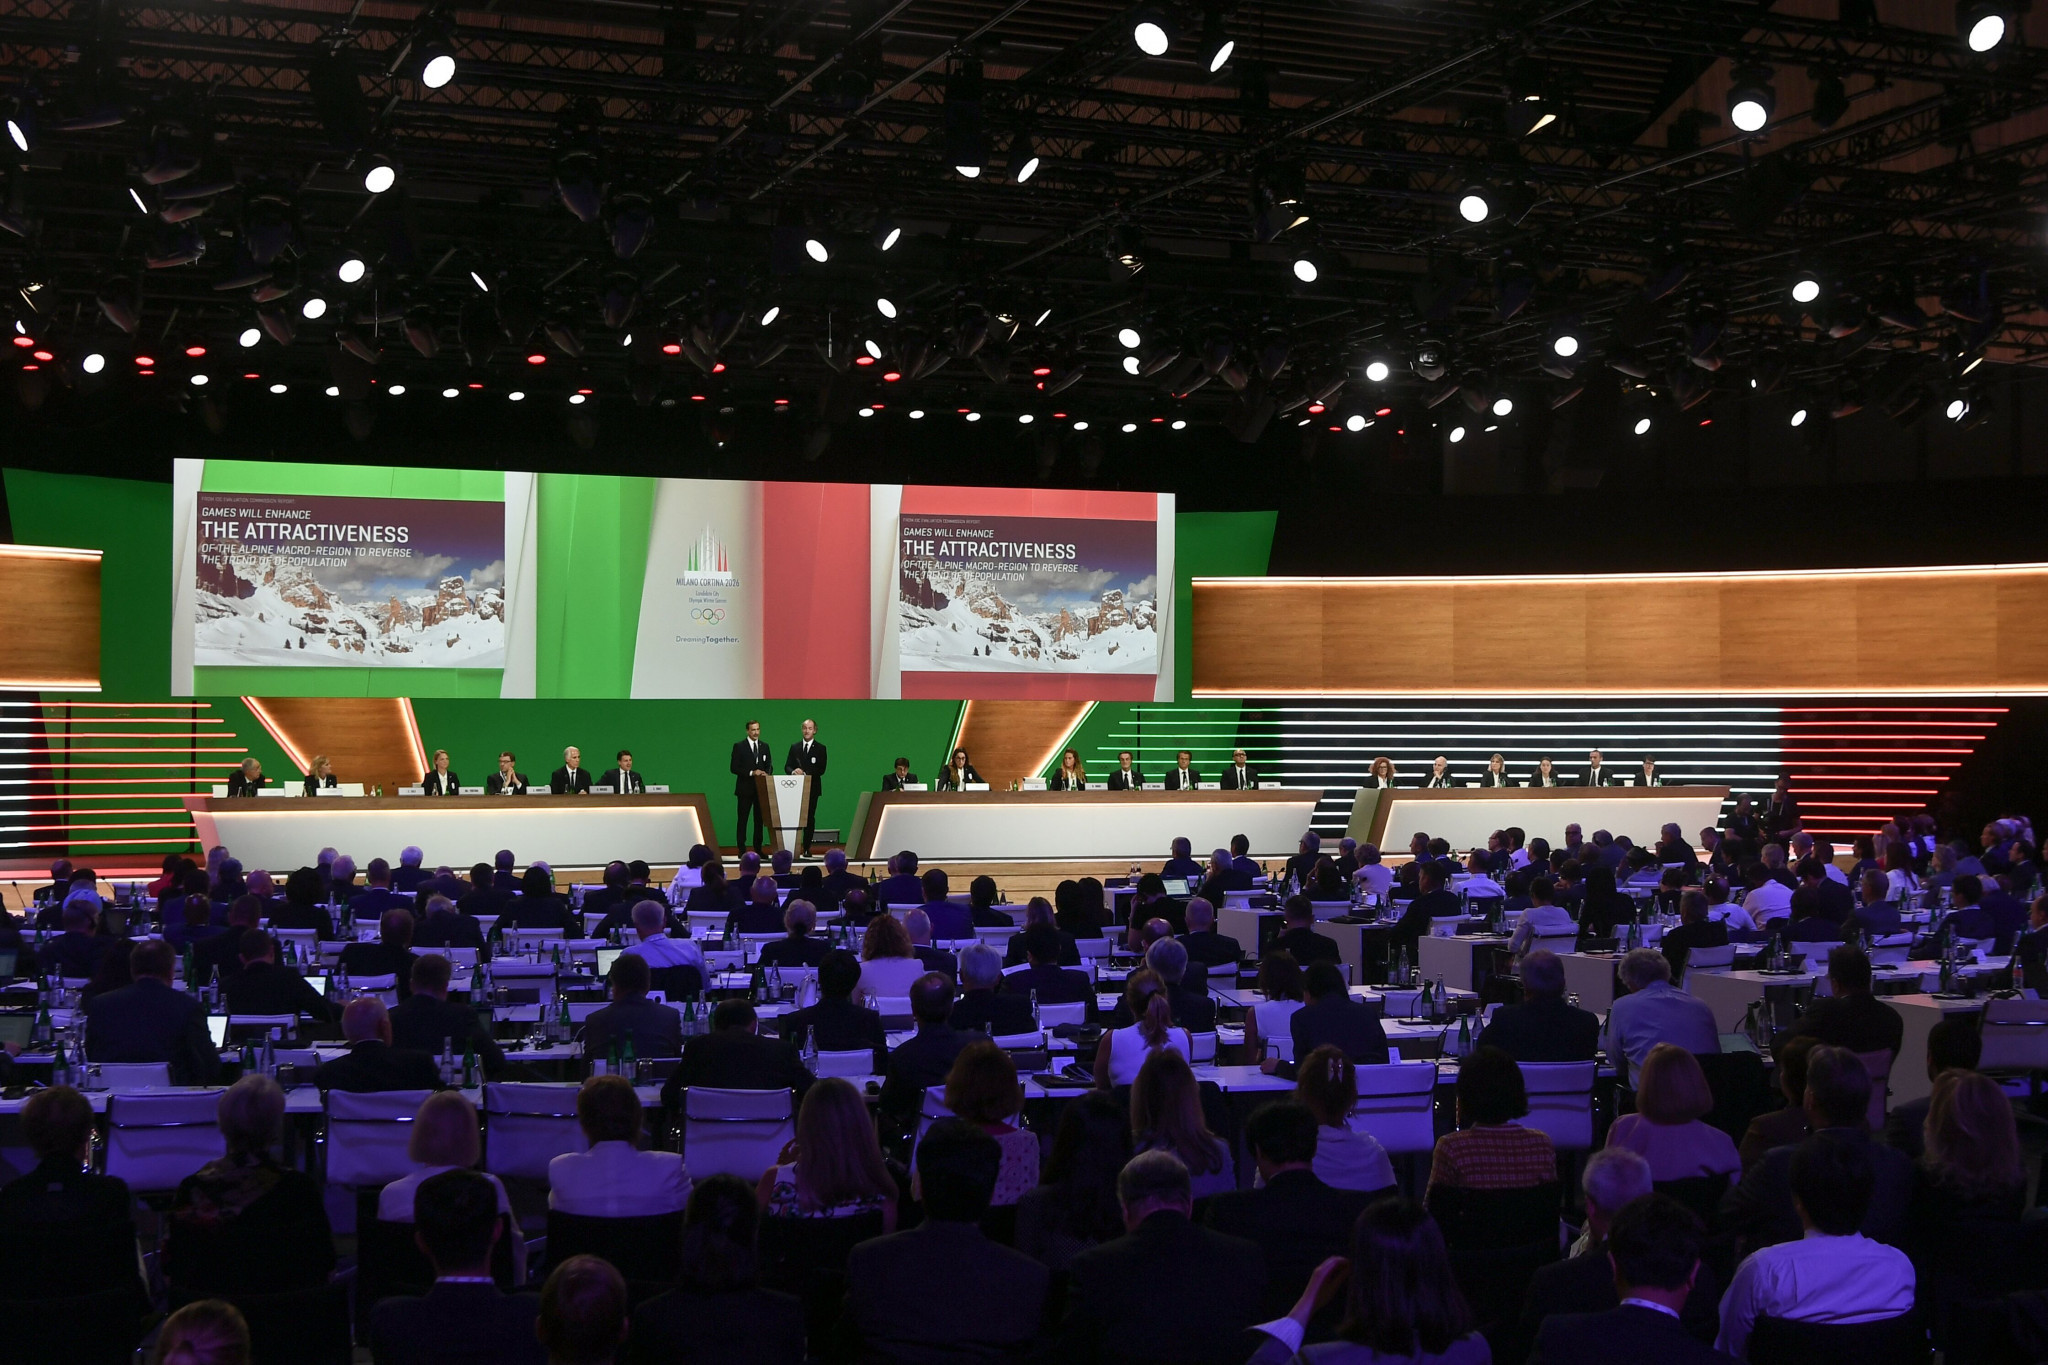 IOC Session: Milan Cortina awarded 2026 Winter Olympic and Paralympic Games ahead of Stockholm Åre